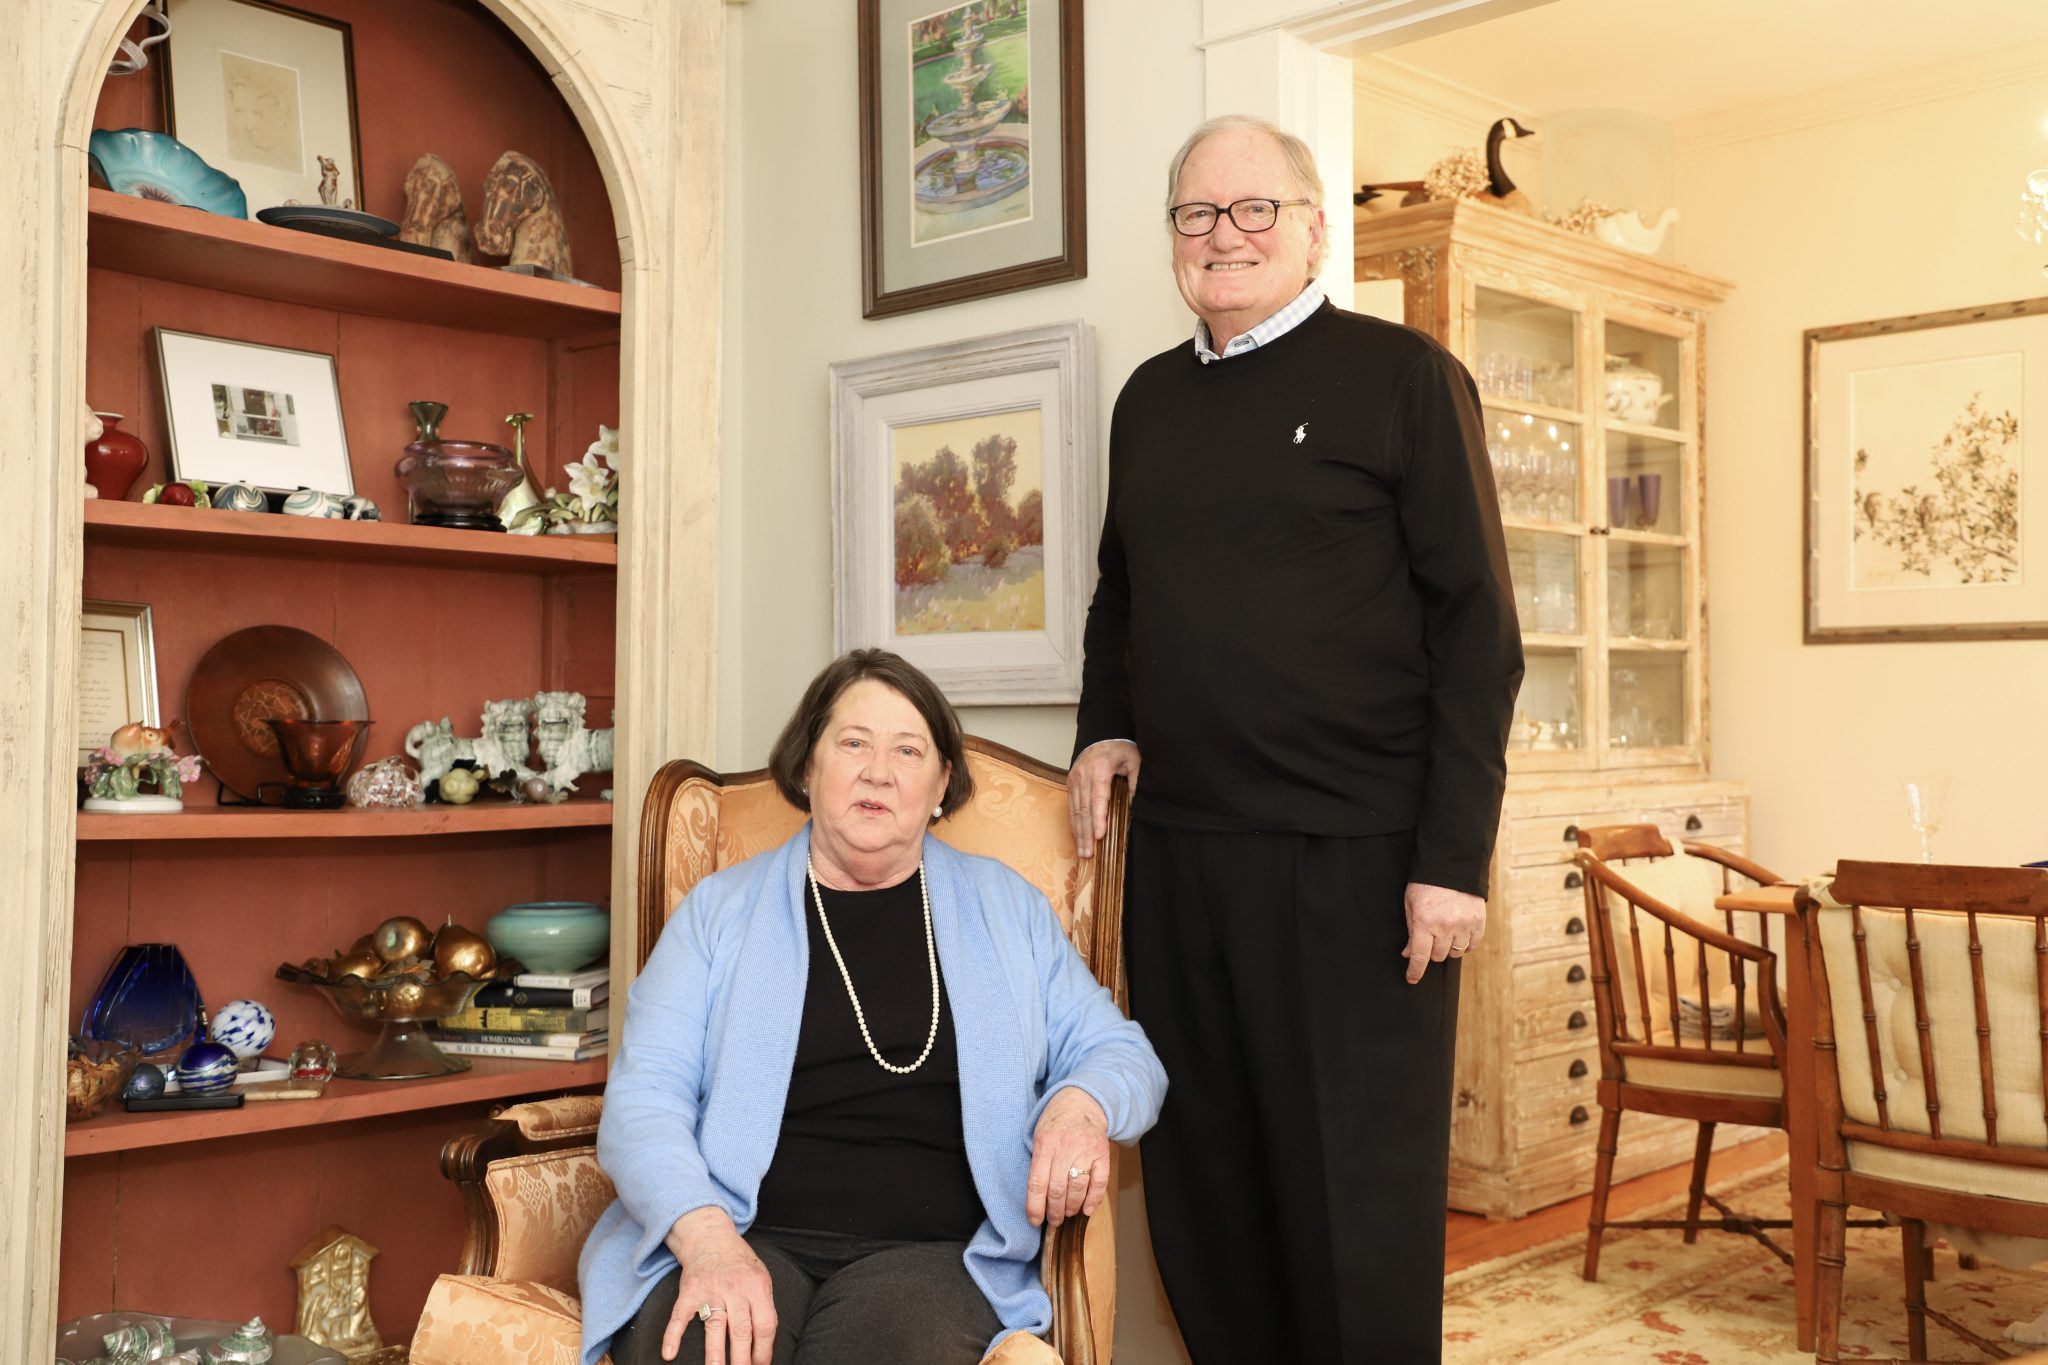 """Melody and John Maxey of Oxford, Mississippi, have given a prized watercolor by artist Dean Mitchell to the University of Mississippi Museum and Historic Houses. The piece, """"Signs of the Times, will be featured this month in the museum's pop-up space. The University Museum is open to the public 10 a.m. until 6 p.m., Tuesday through Saturday. Photo by Kirsten Faulkner/University of Mississippi"""